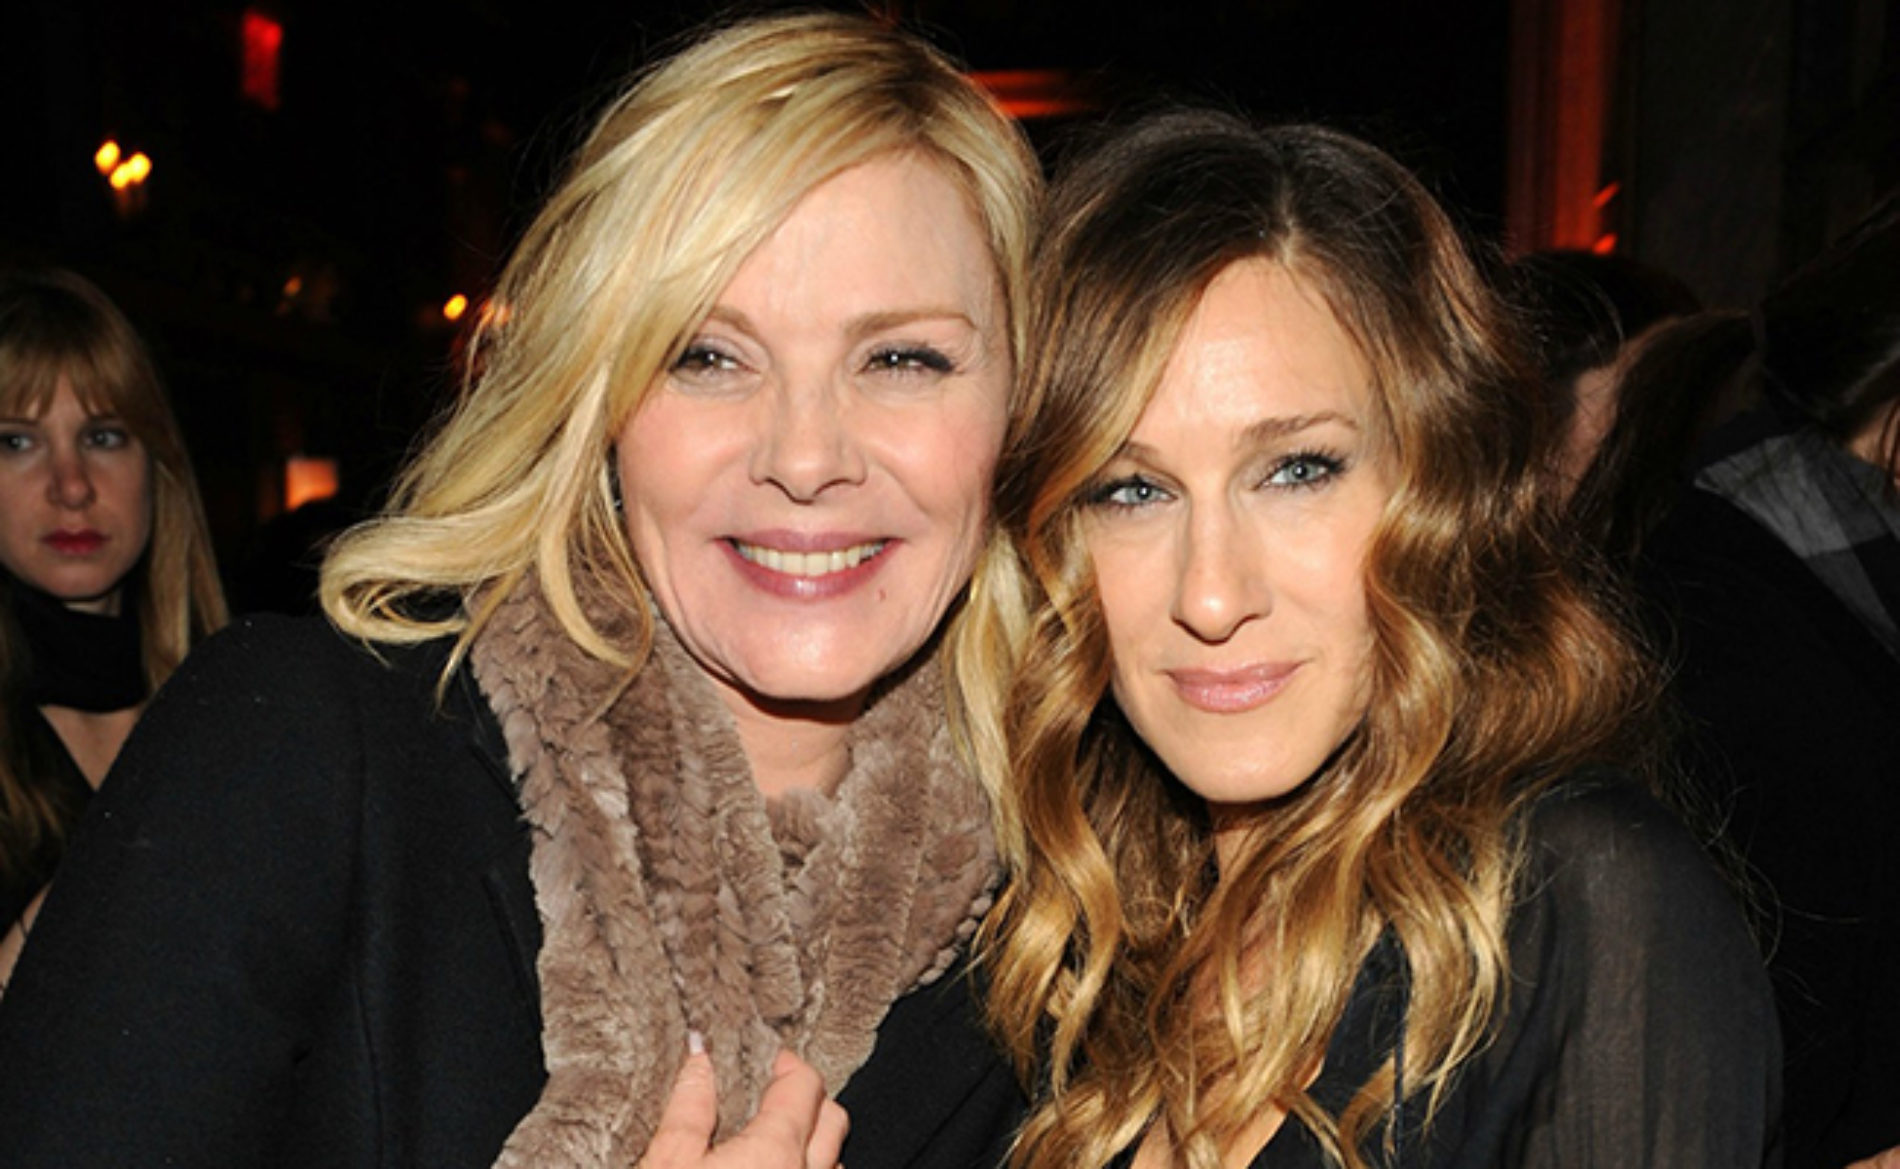 Sarah Jessica Parker Hints That Samantha Jones Could Be Killed Off In 'Sex And The City 3'